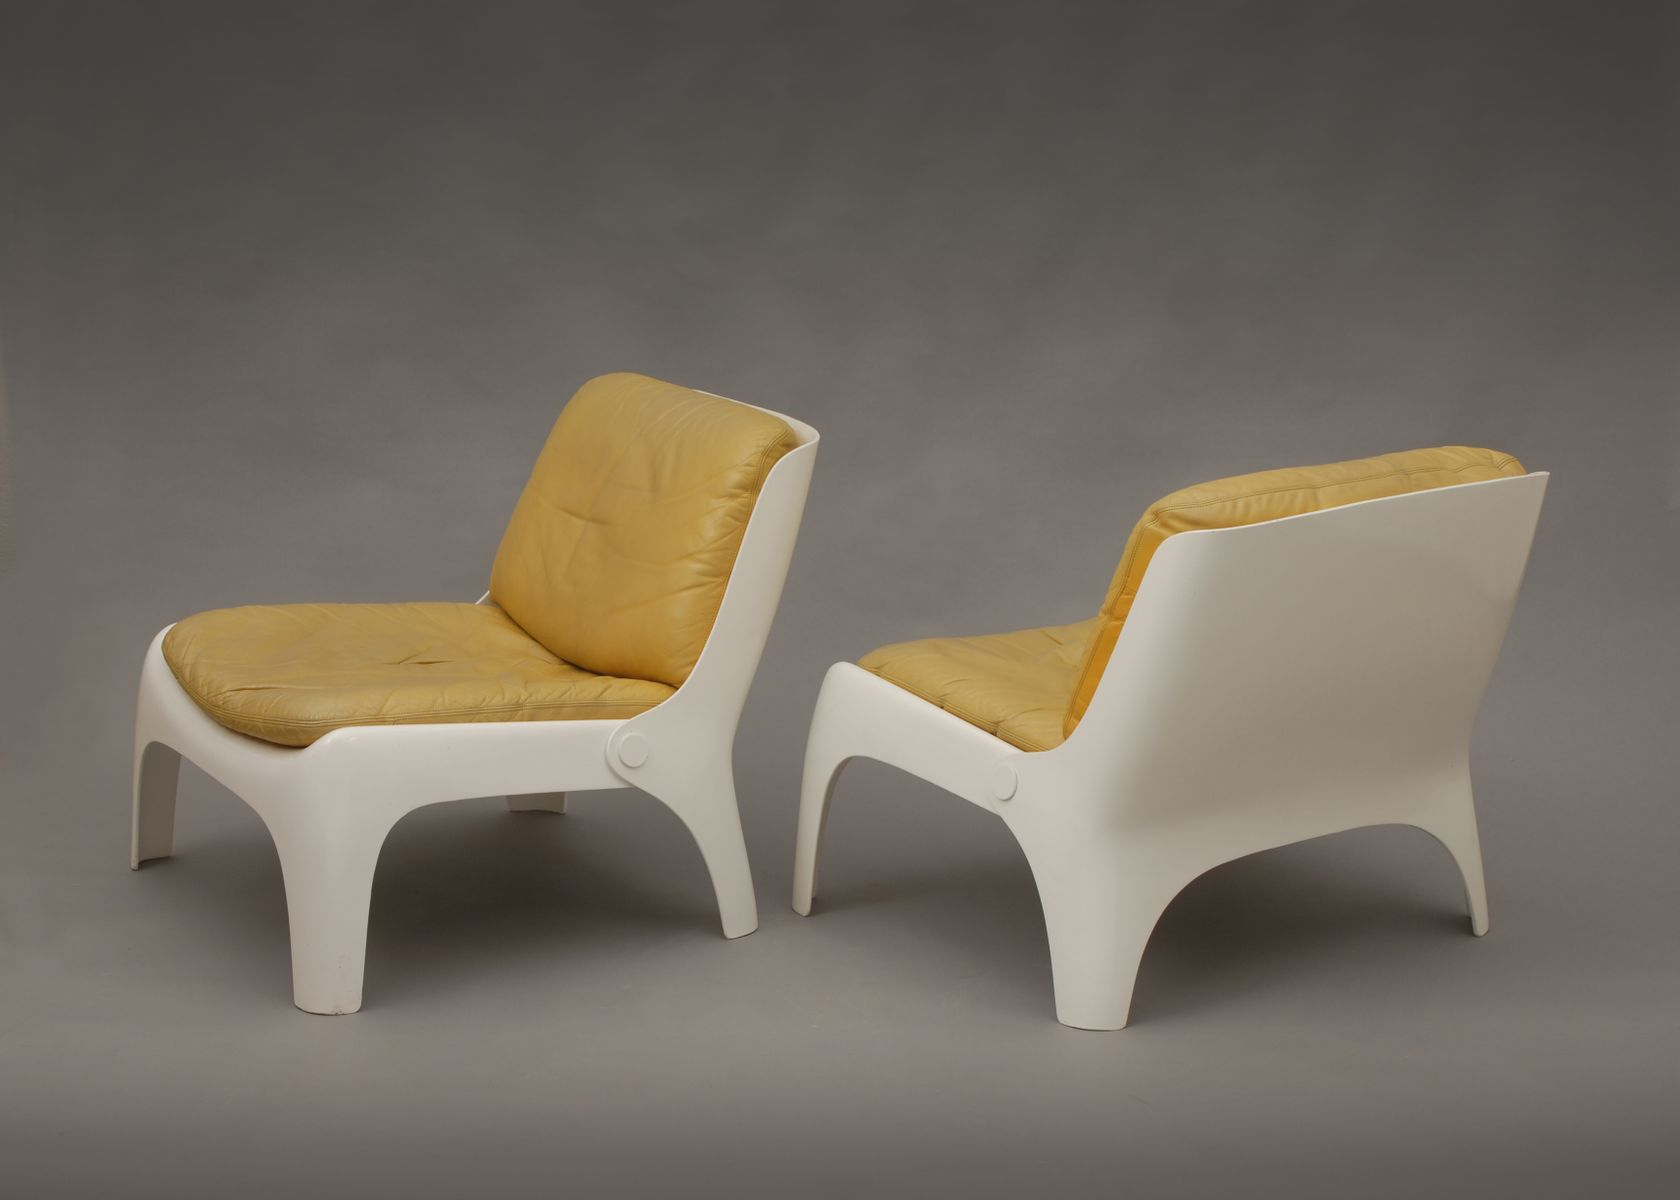 Easy Fiberglass Chairs 1970s Set of 4 for sale at Pamono